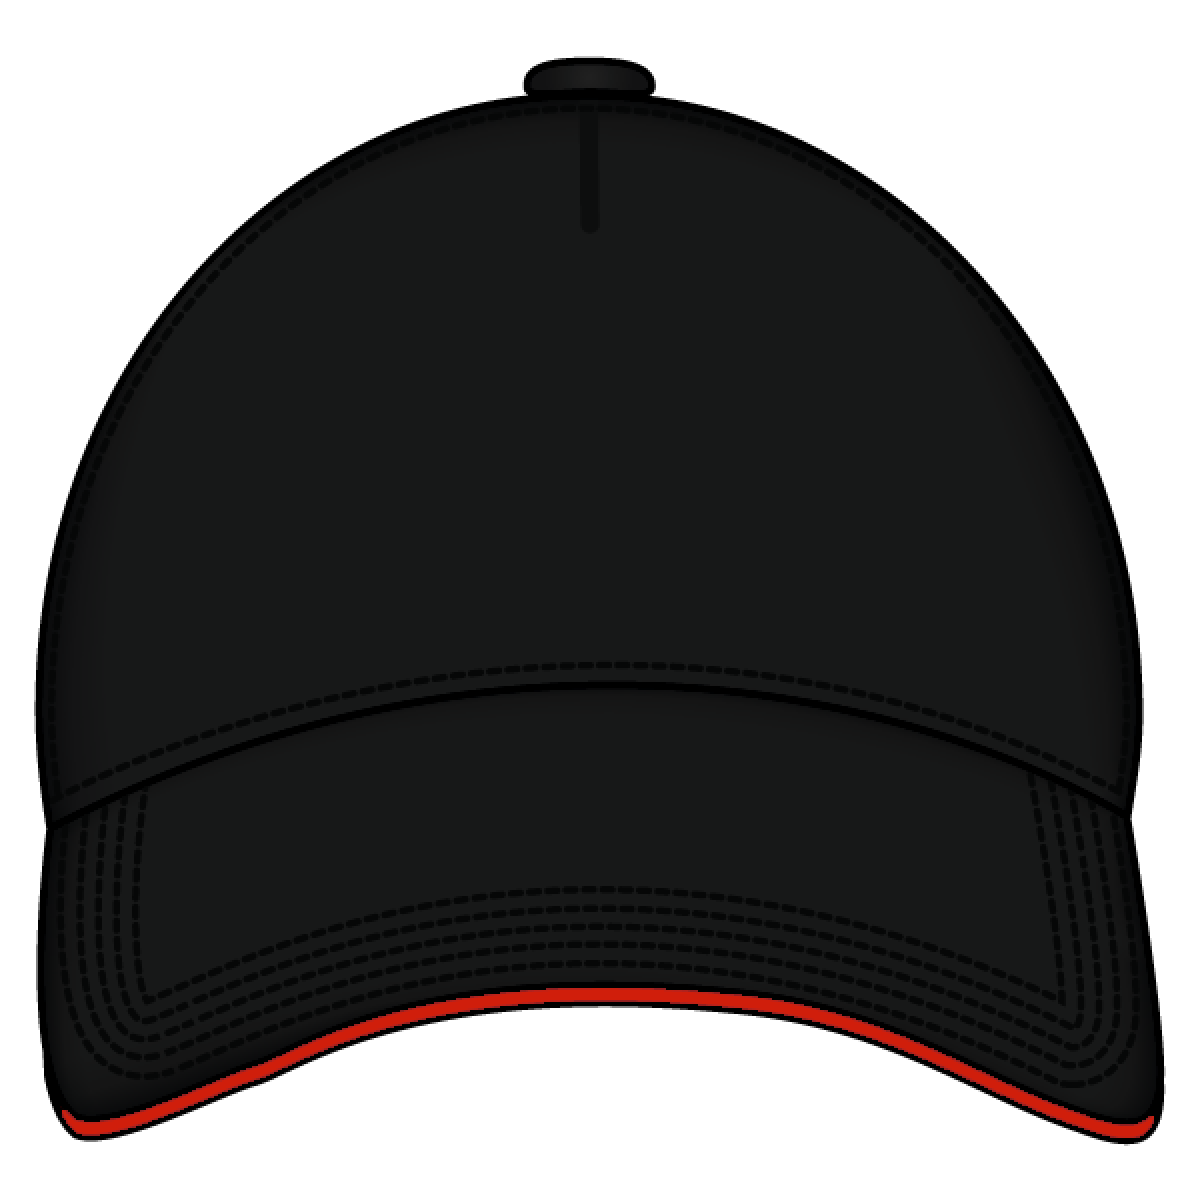 Baseball Cap Clipart - Clipart Kid